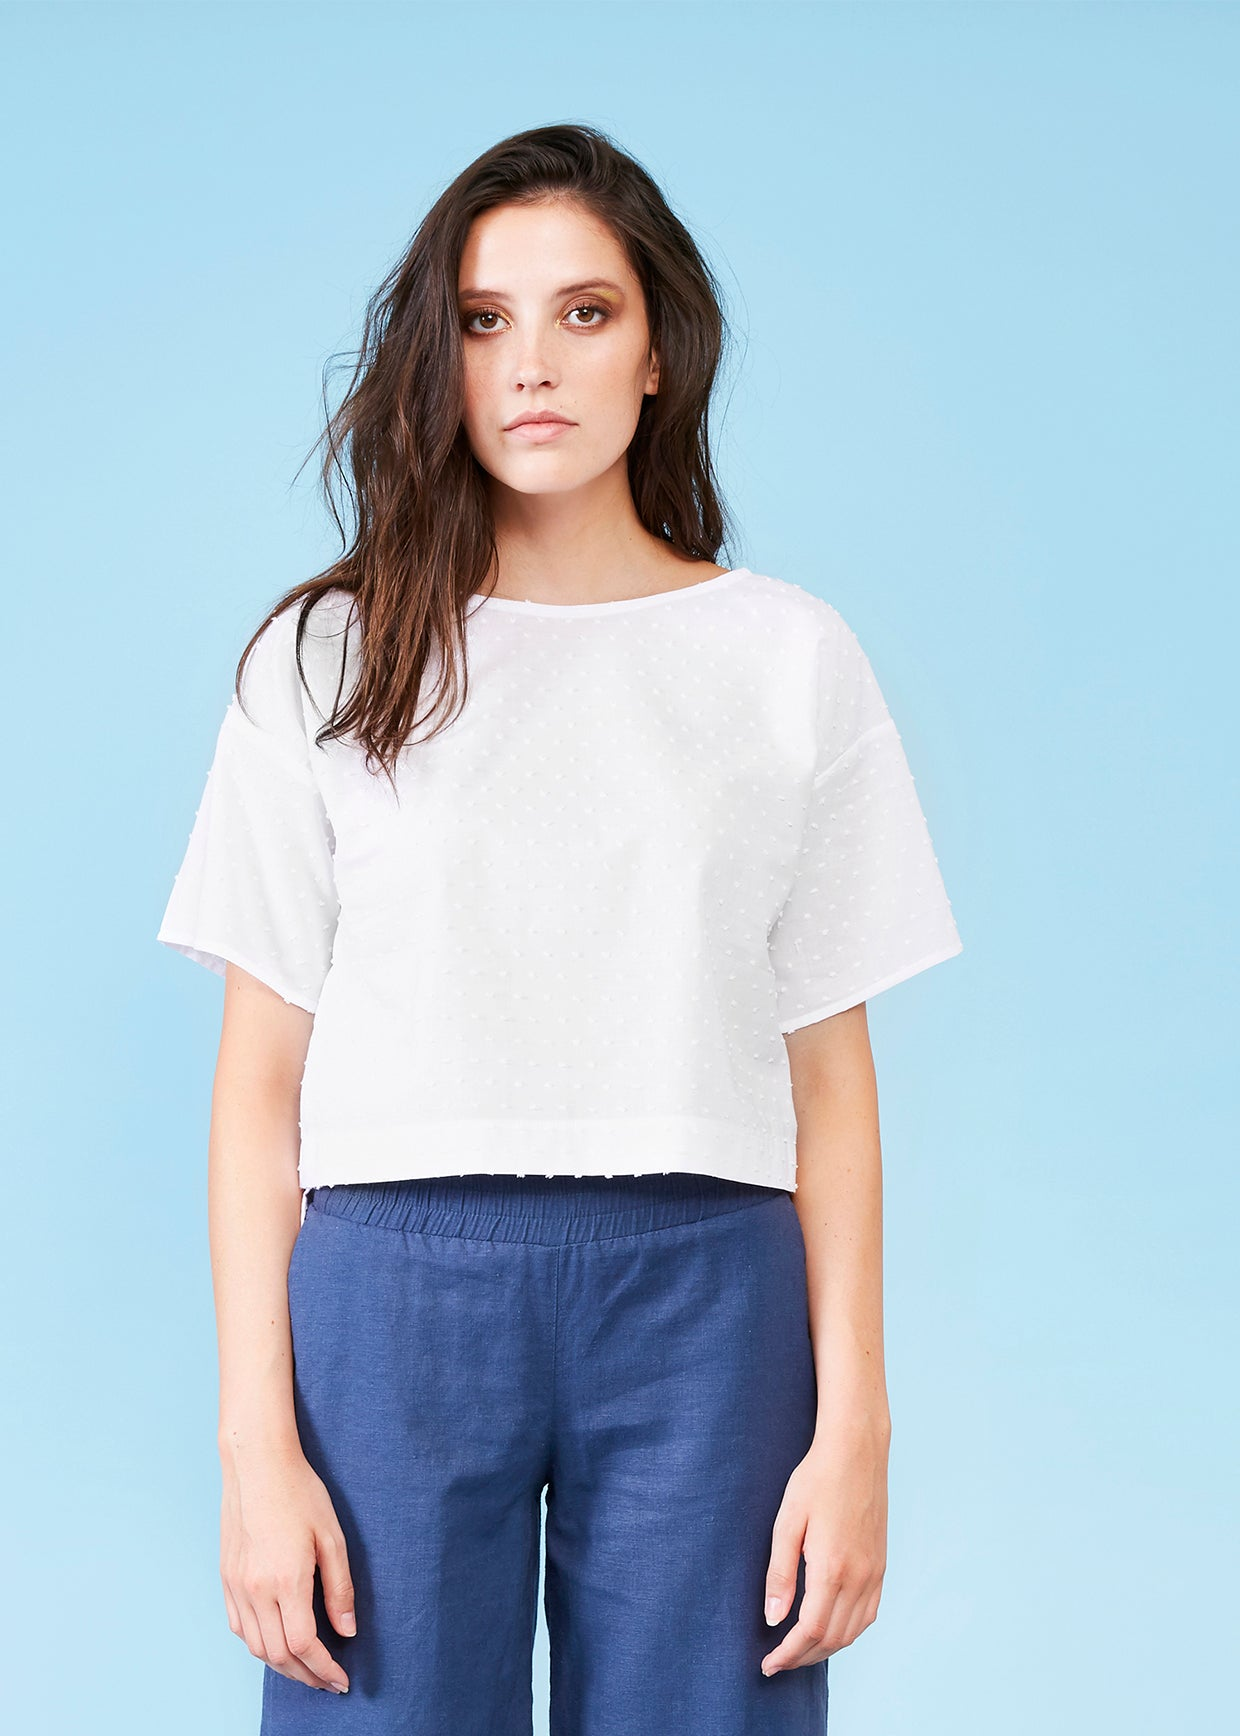 Westley Crop Top